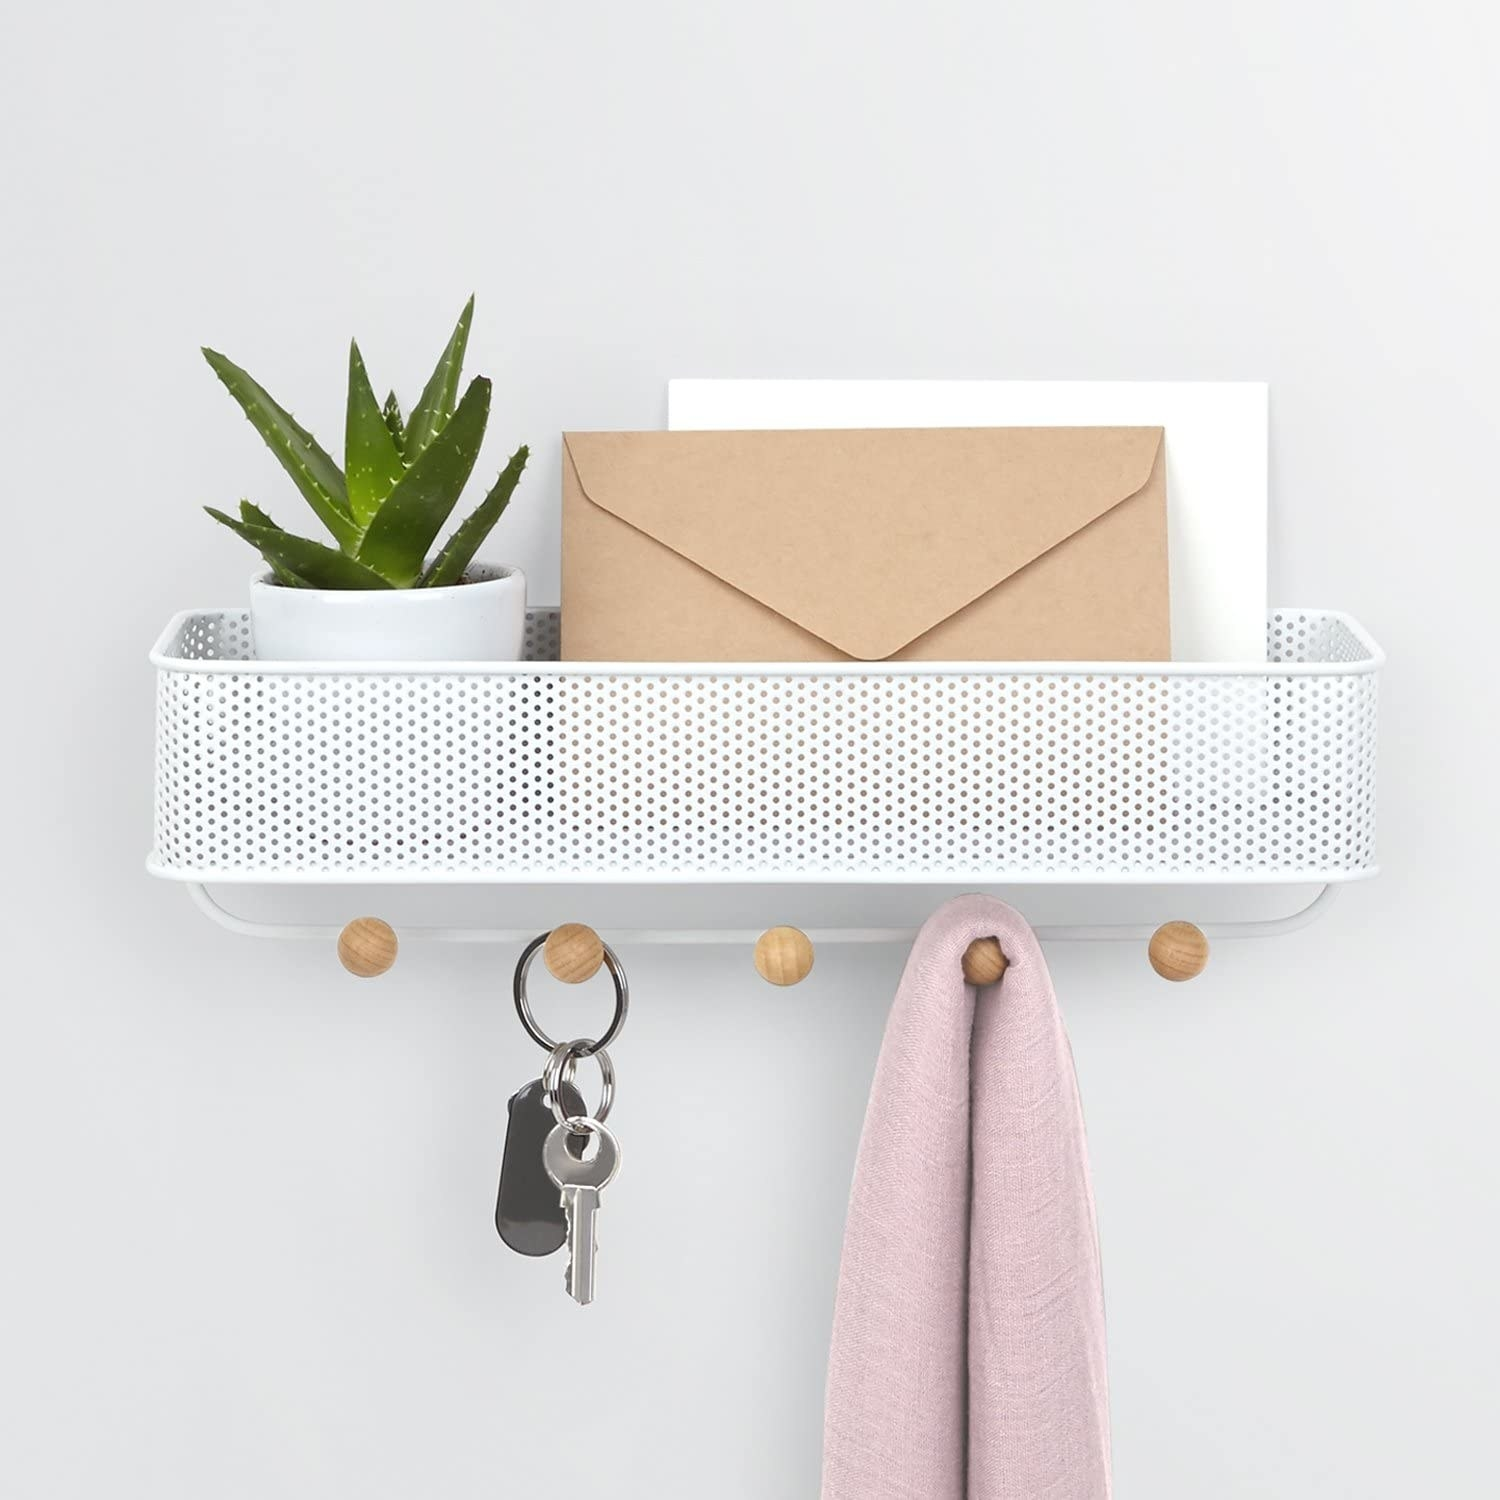 A close up of the entryway organizer holding keys, mail, and a scarf